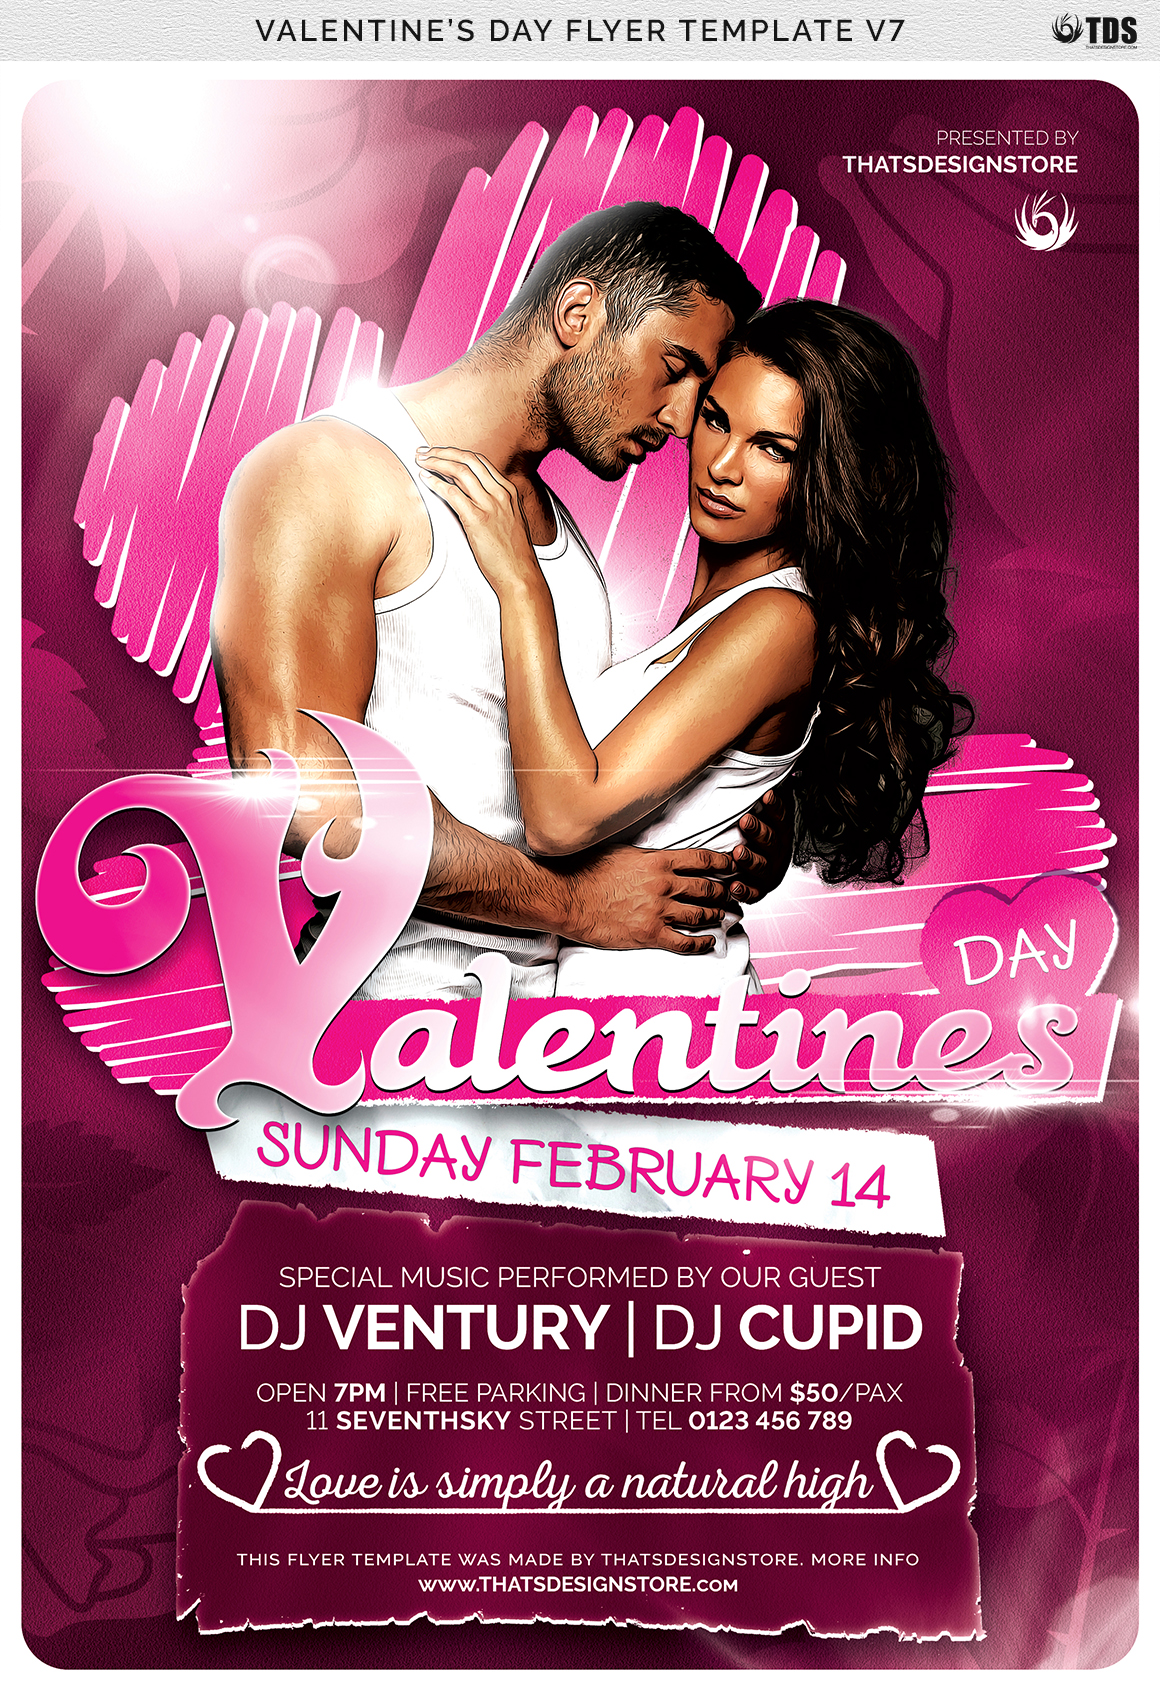 Valentines Day Flyer Template V7 example image 7